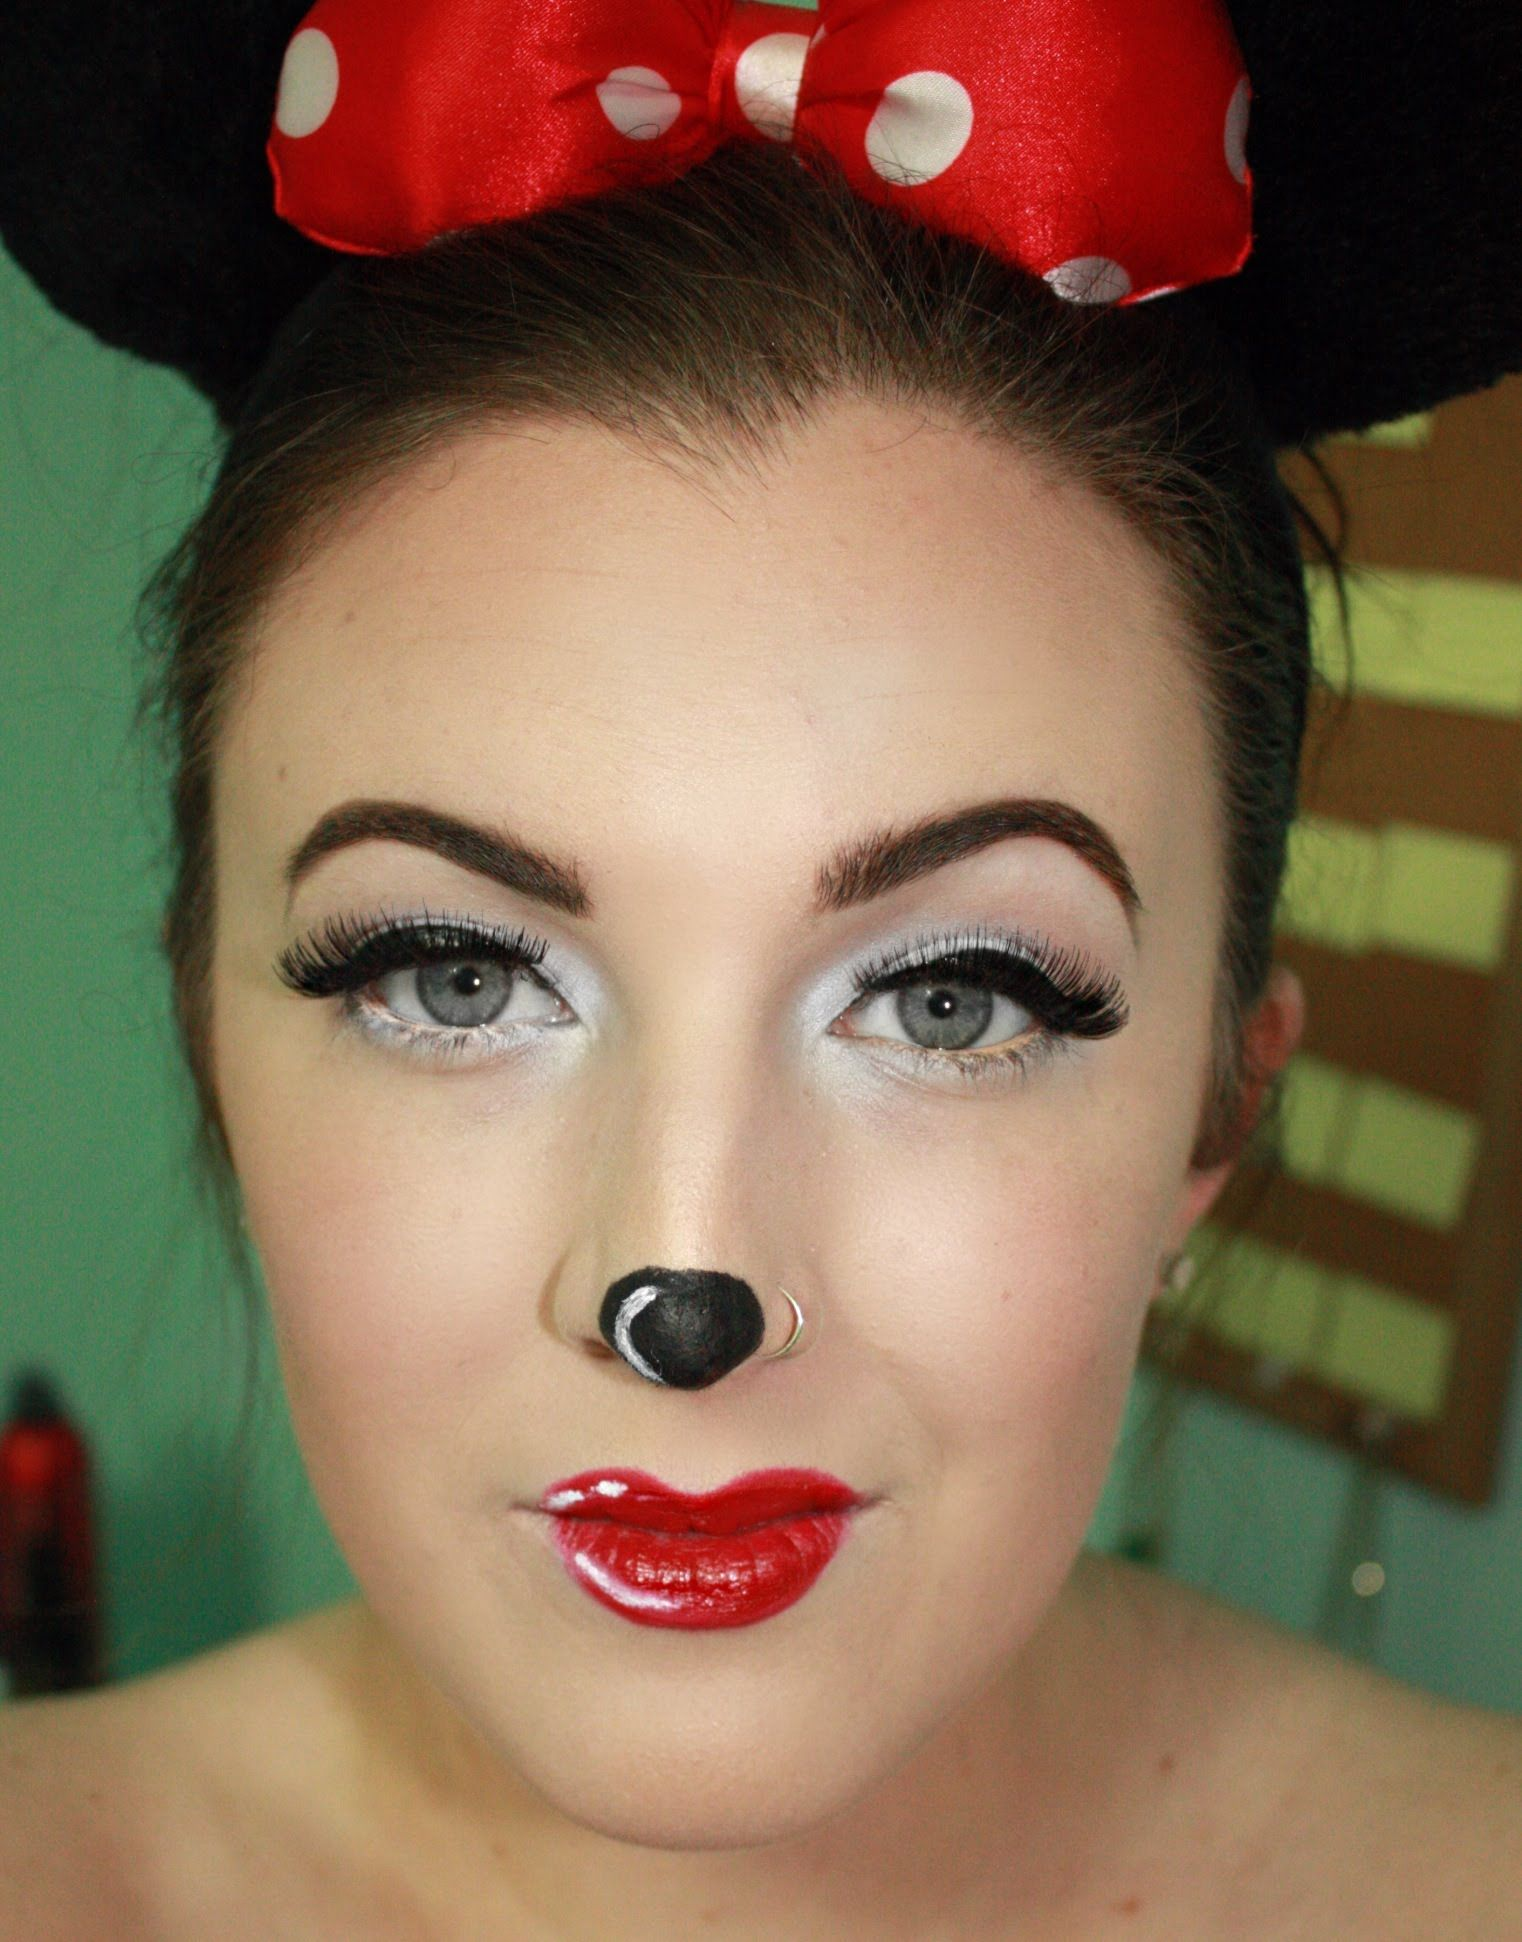 Minnie Mouse Halloween Makeup Tutorial | Holidays | Pinterest ...